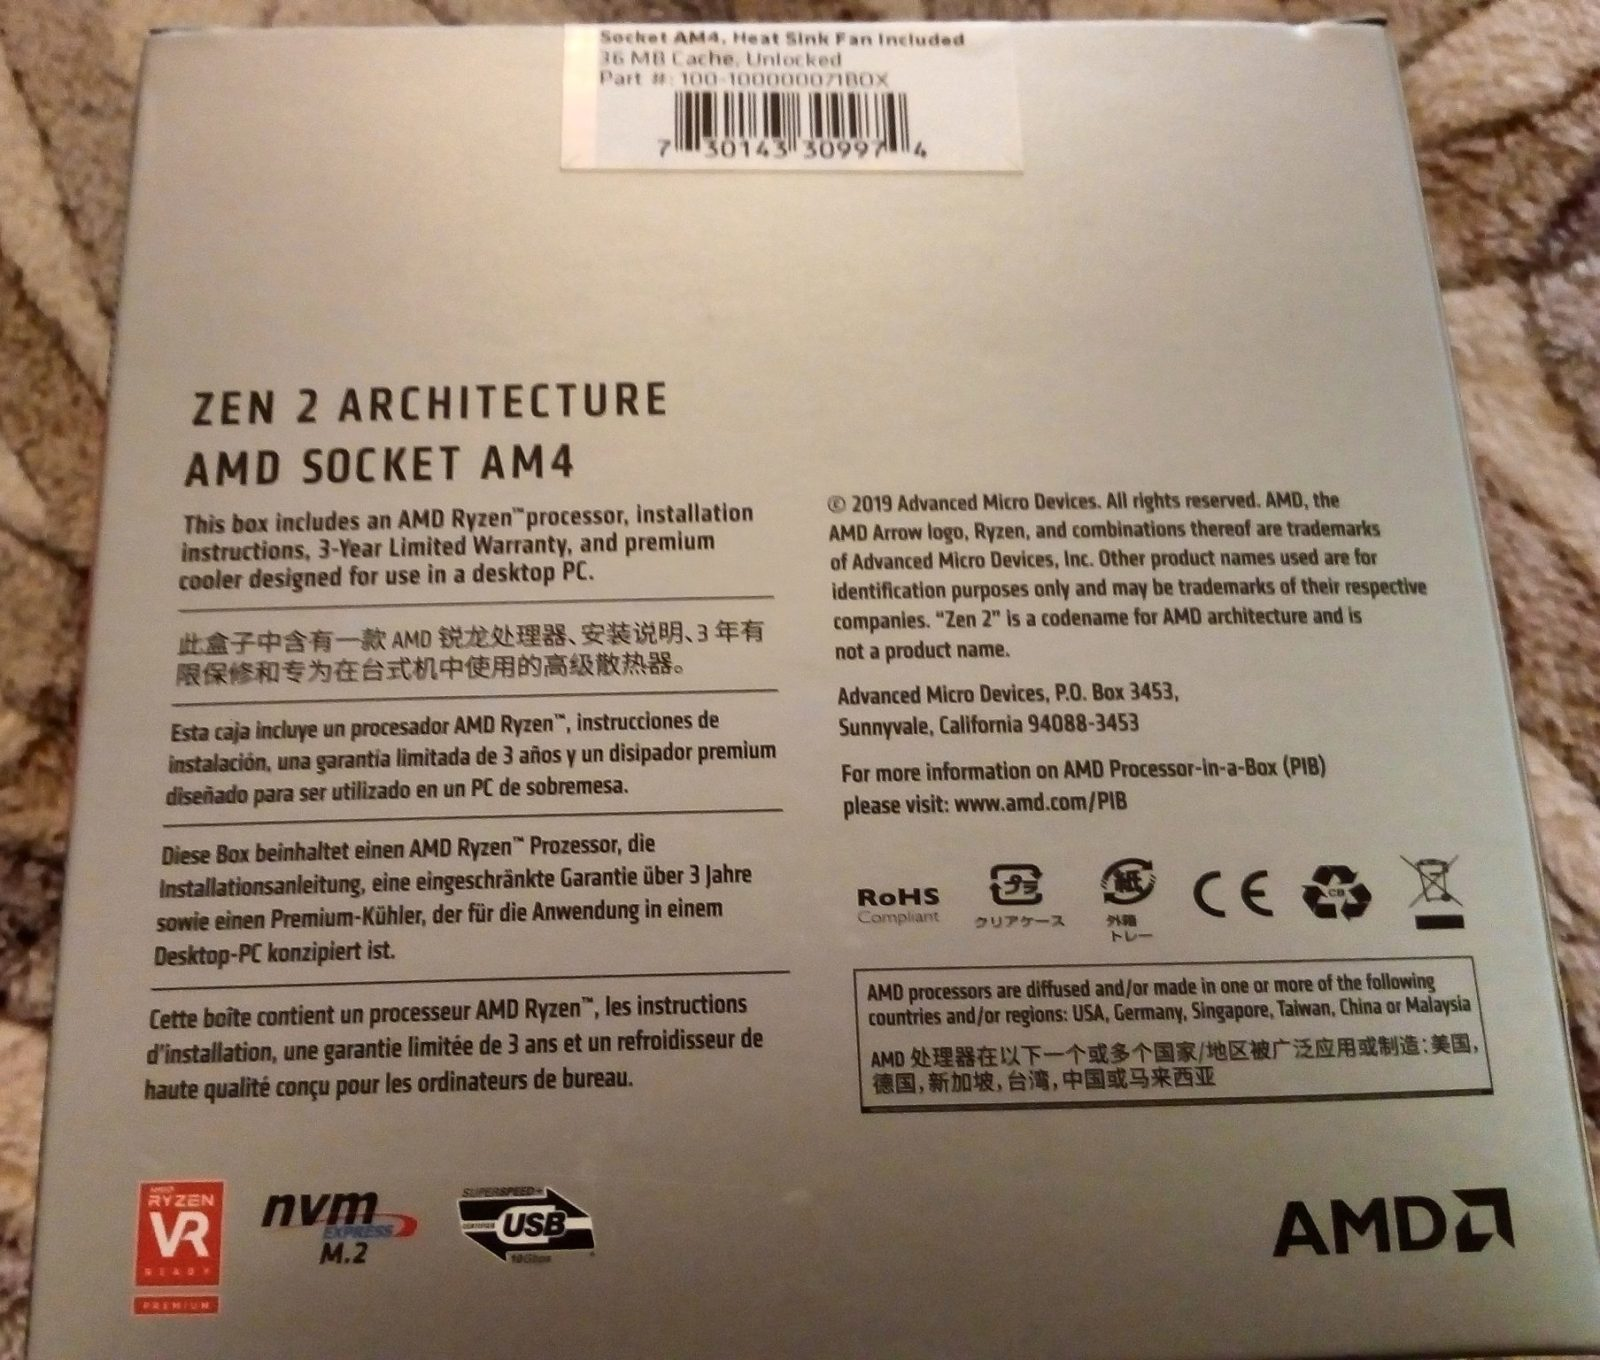 Review on AMD Ryzen 7 3700X AM4 BOX Processor – Tiny Reviews